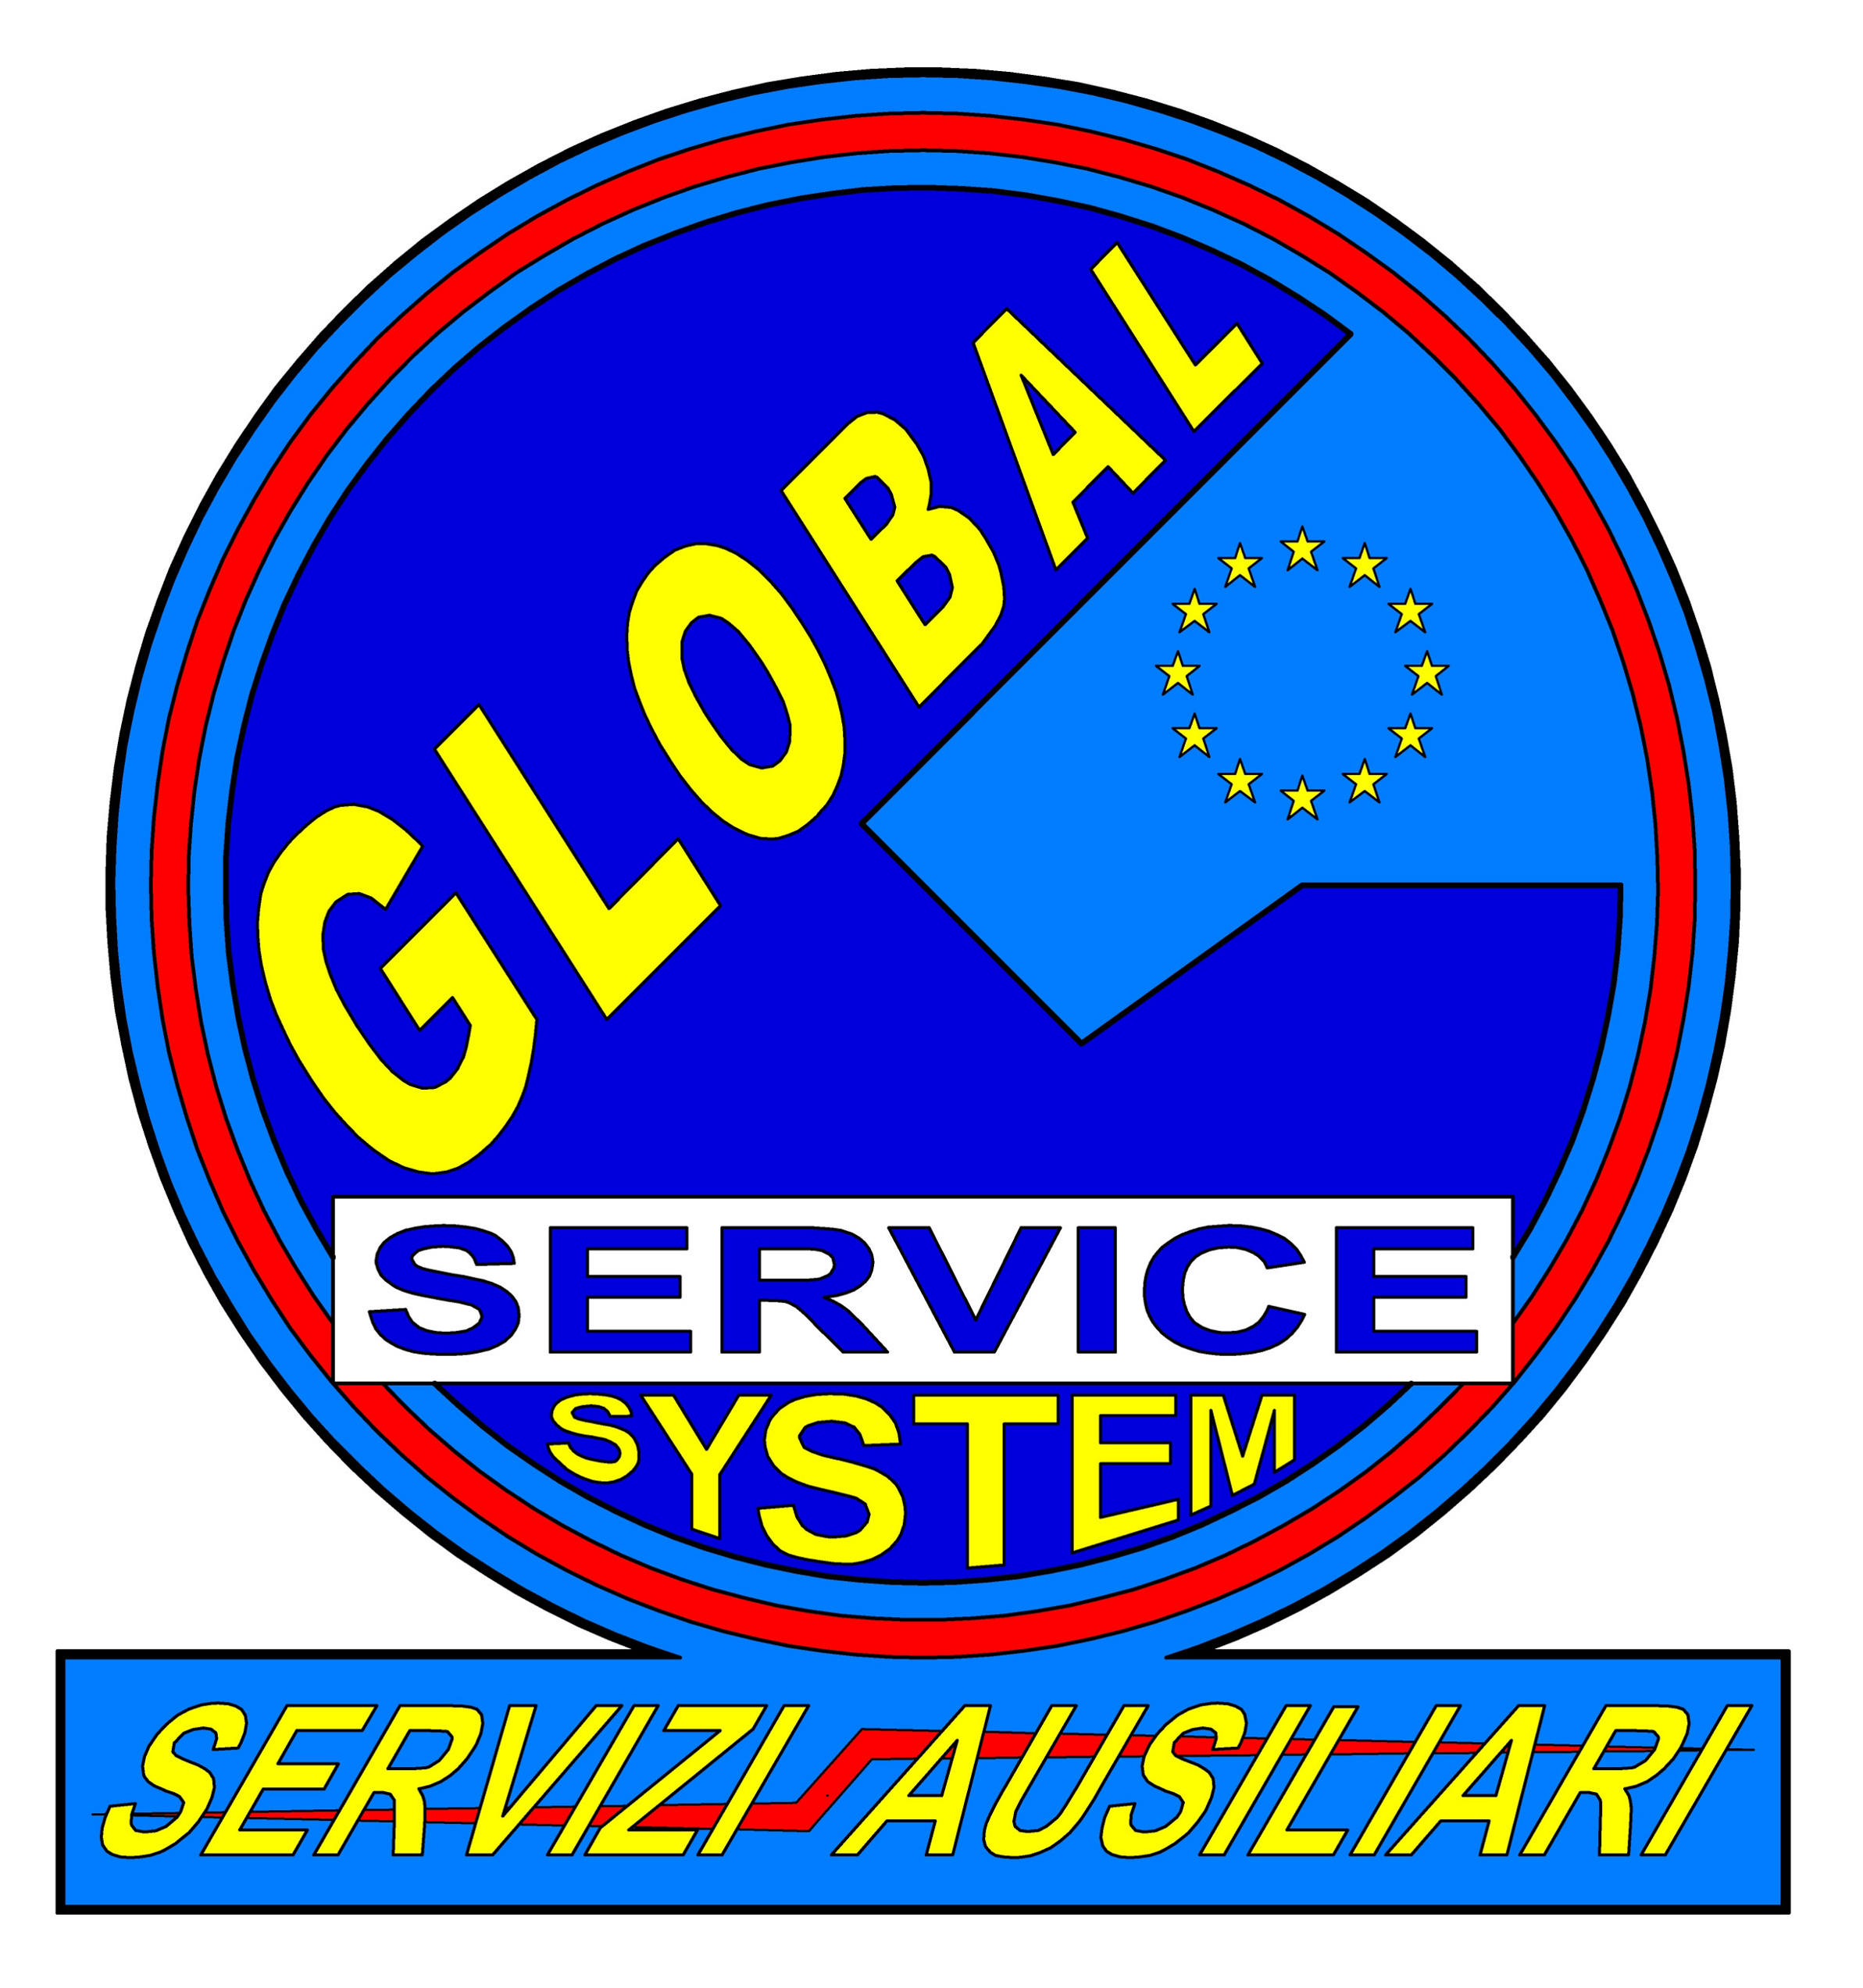 GLOBAL%20service%20system